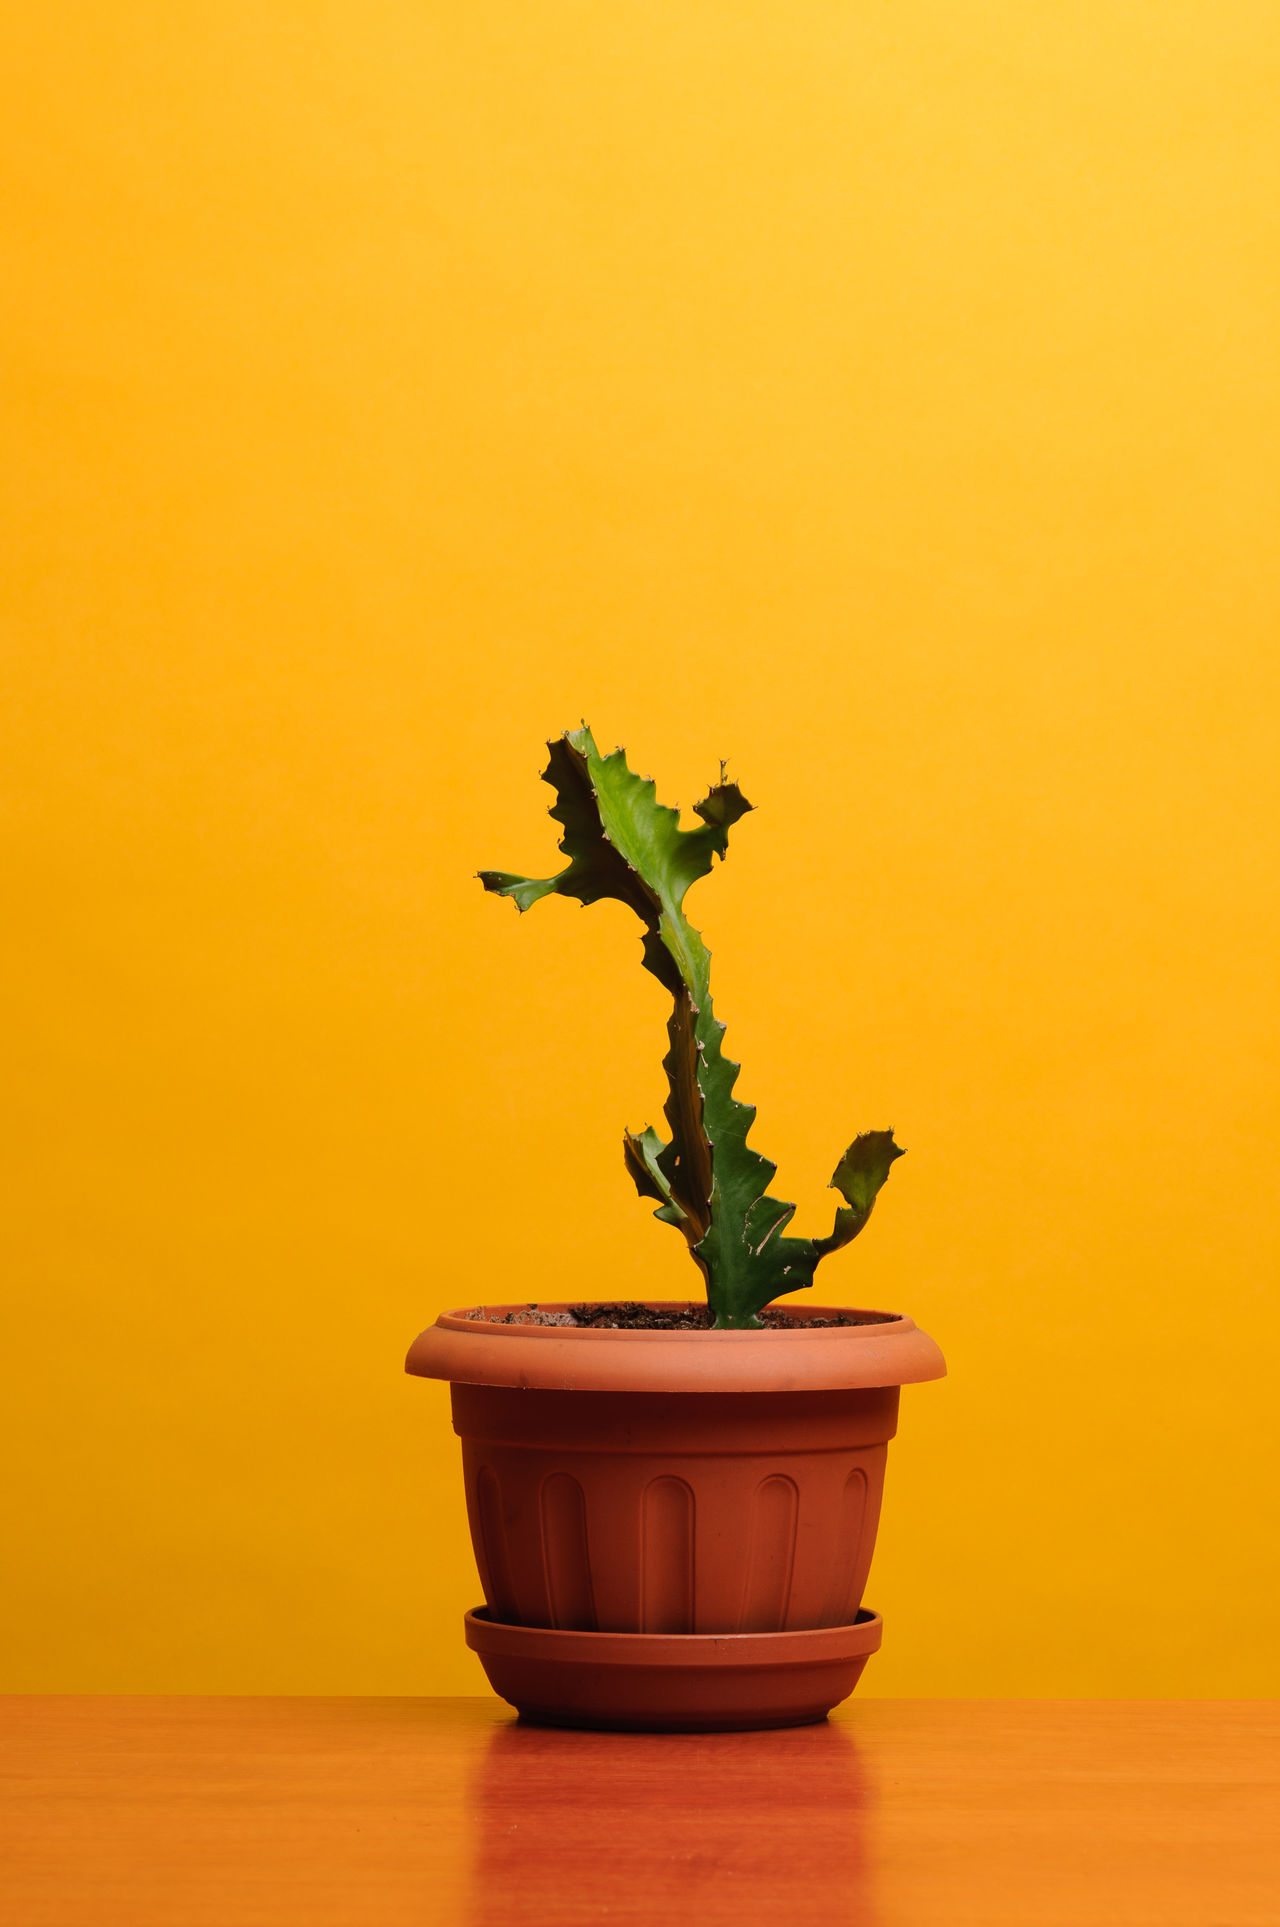 Cactus Close-up Flower Pot Growth Indoors  No People Orange Color Potted Plant Sea Selective Focus Table Vibrant Color Yellow First Eyeem Photo